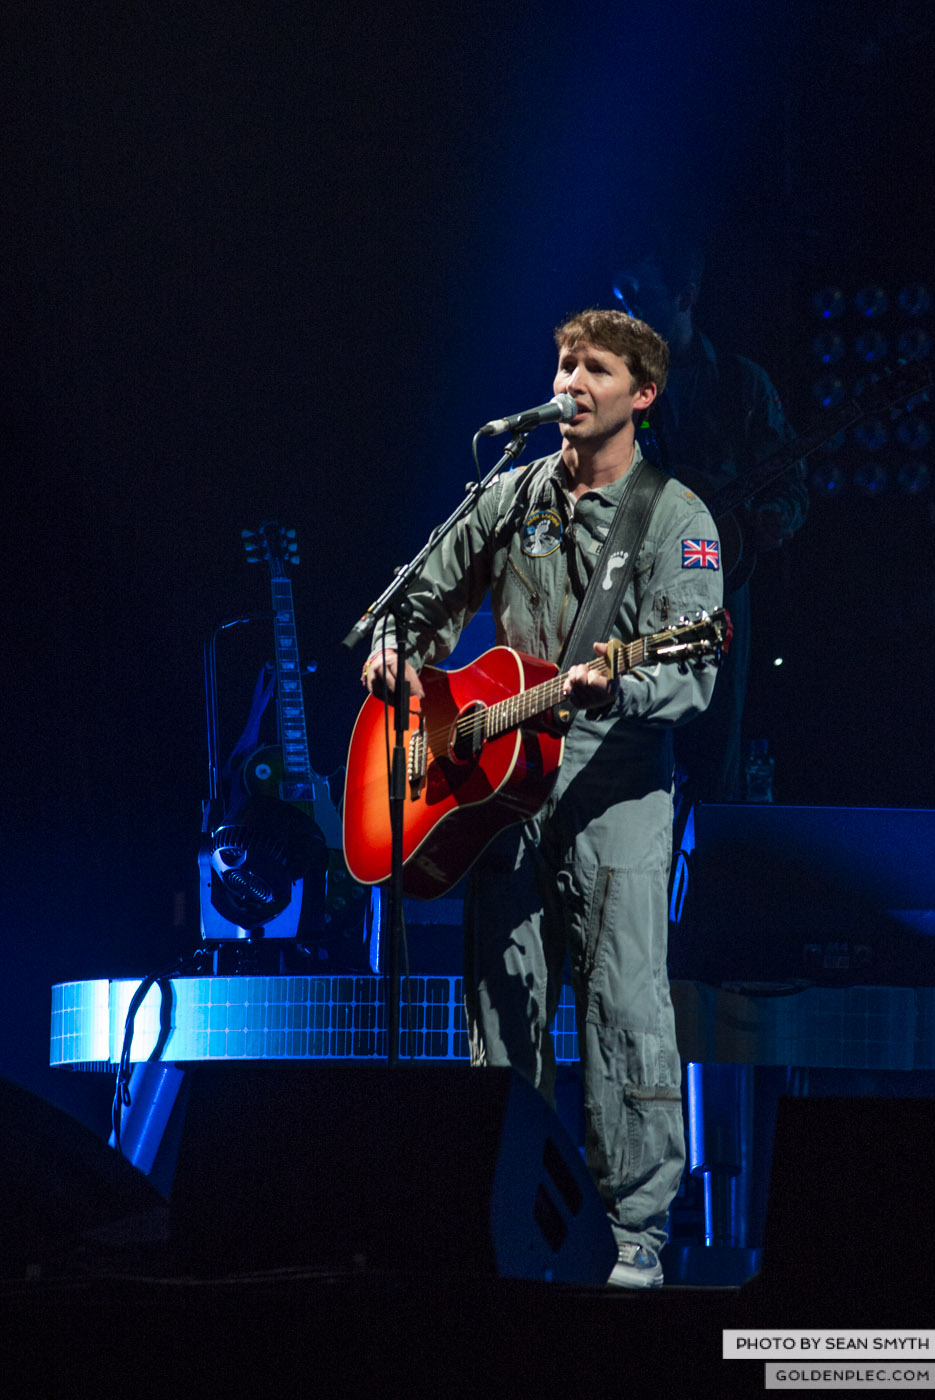 james-blunt-at-3arena-by-sean-smyth-20-11-14-19-of-29